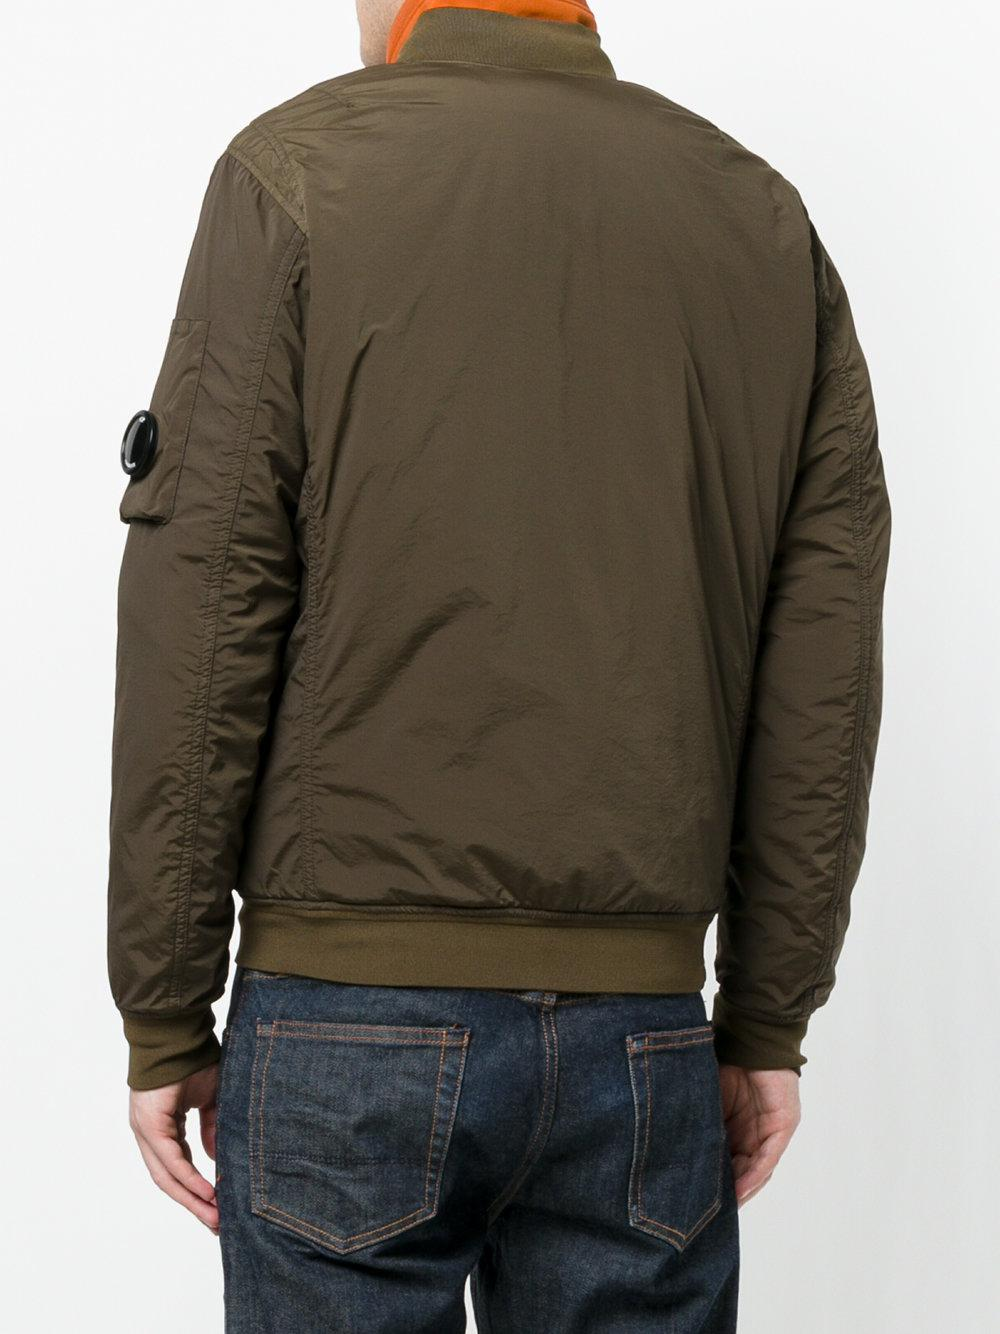 C P Company Cotton Zip Up Jacket in Green for Men